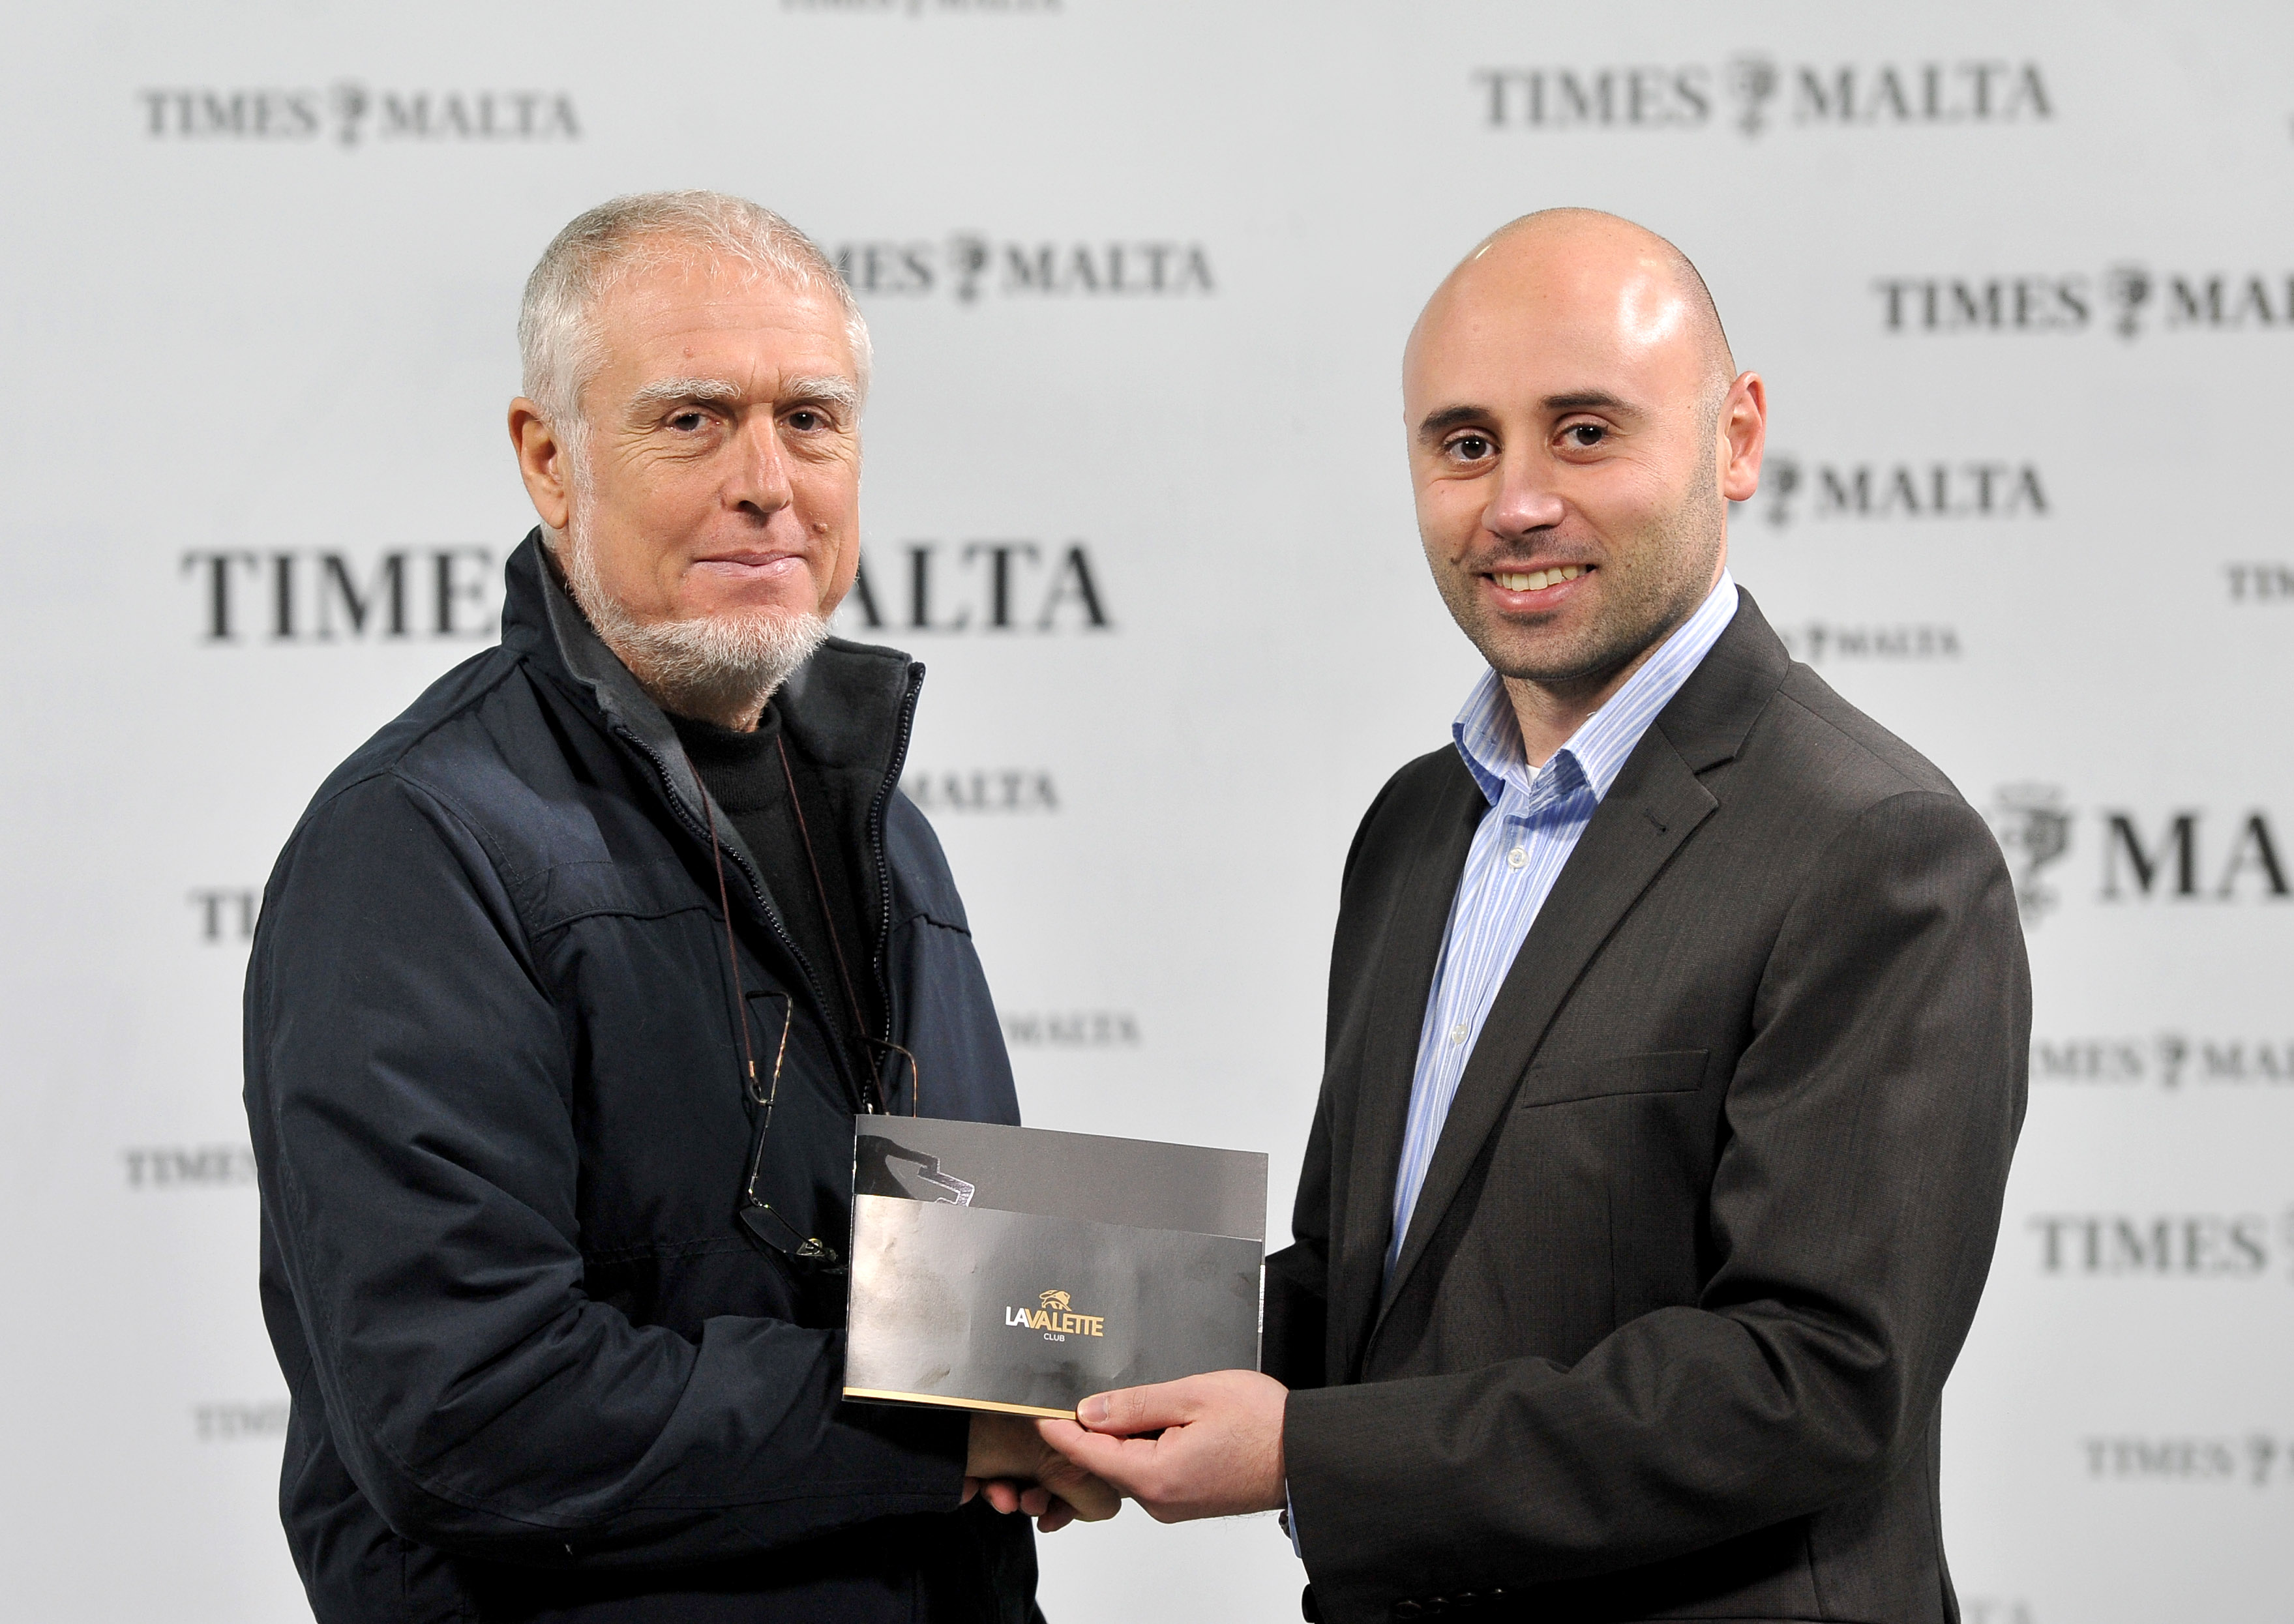 Joseph Muscat receives his membership to the La Valette Club from Times of Malta's CCO Alex Galea